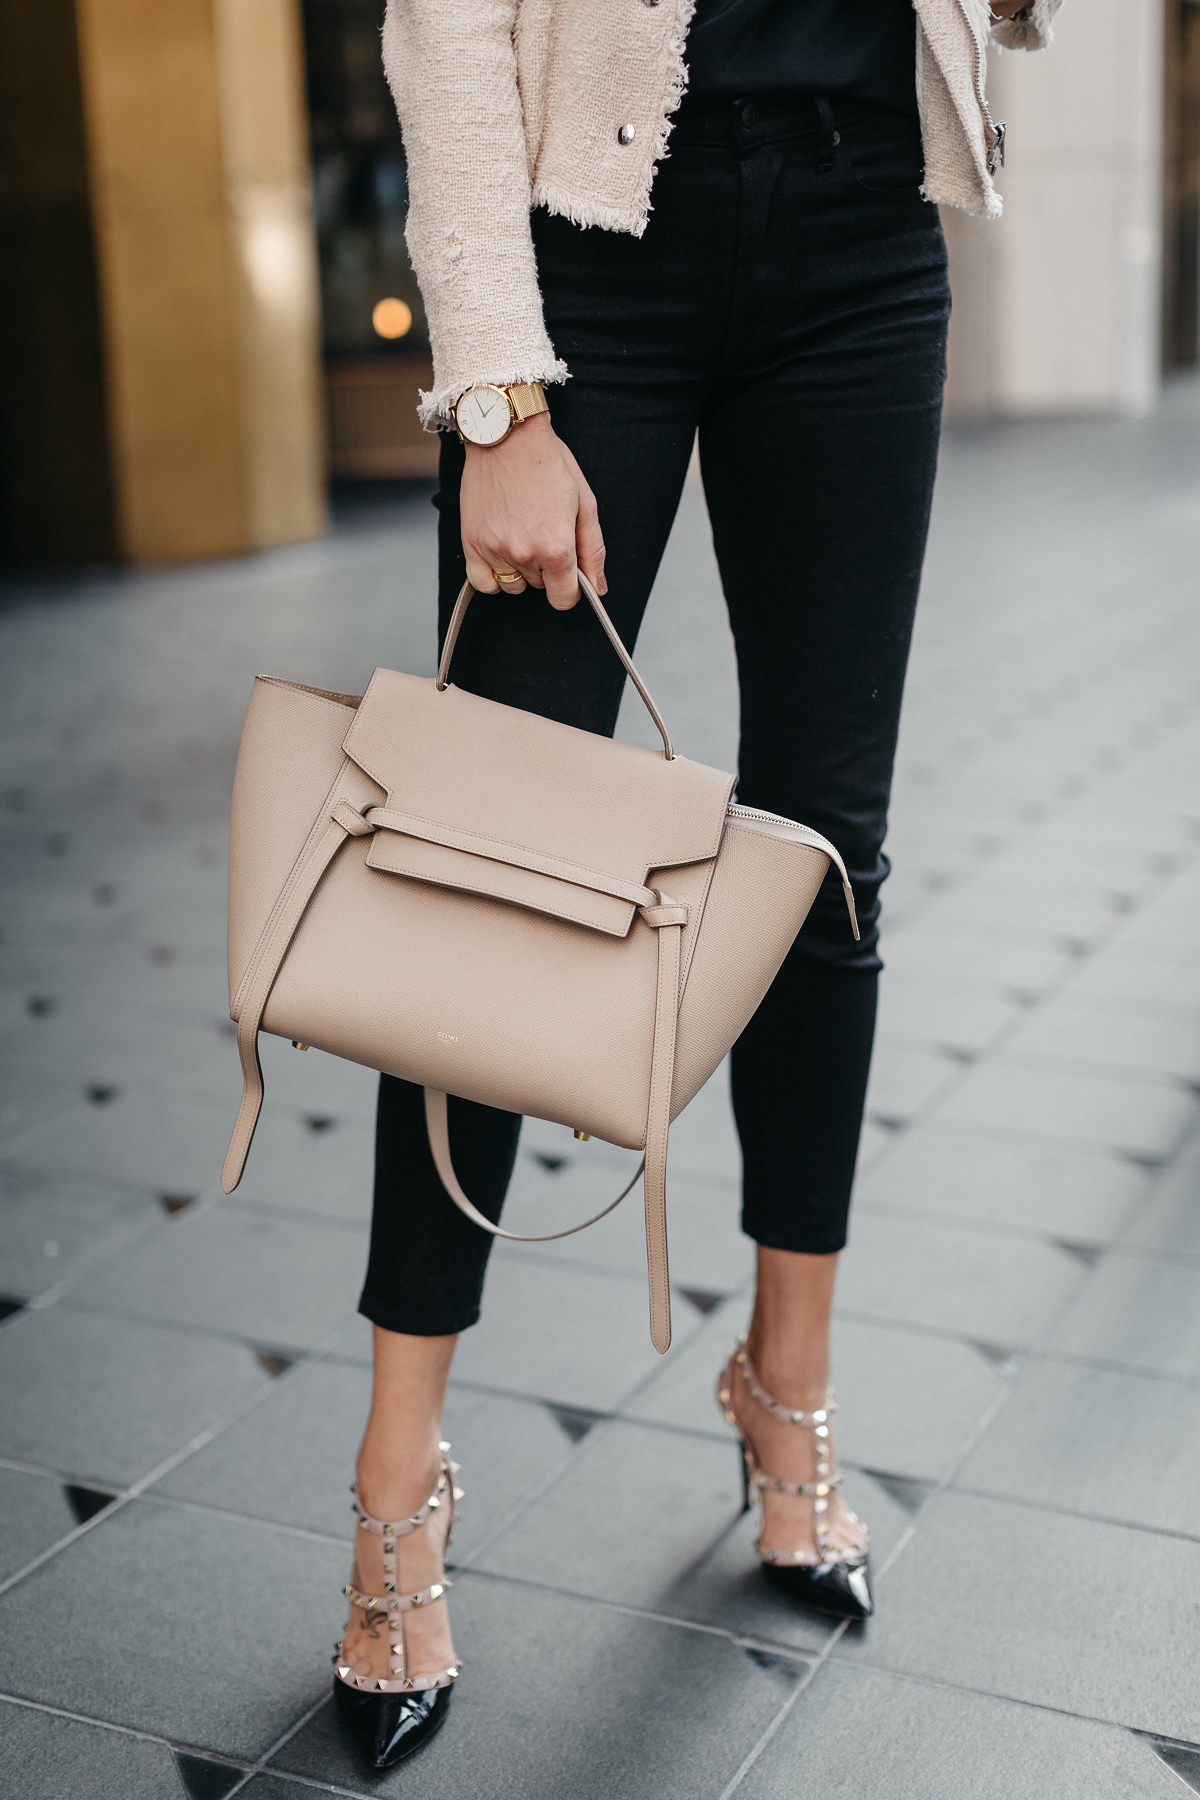 Black Skinny Jeans Valentino Rockstud Pumps Celine Belt Bag Fashion Jackson Dallas Blogger Fashion Blogger Street Style